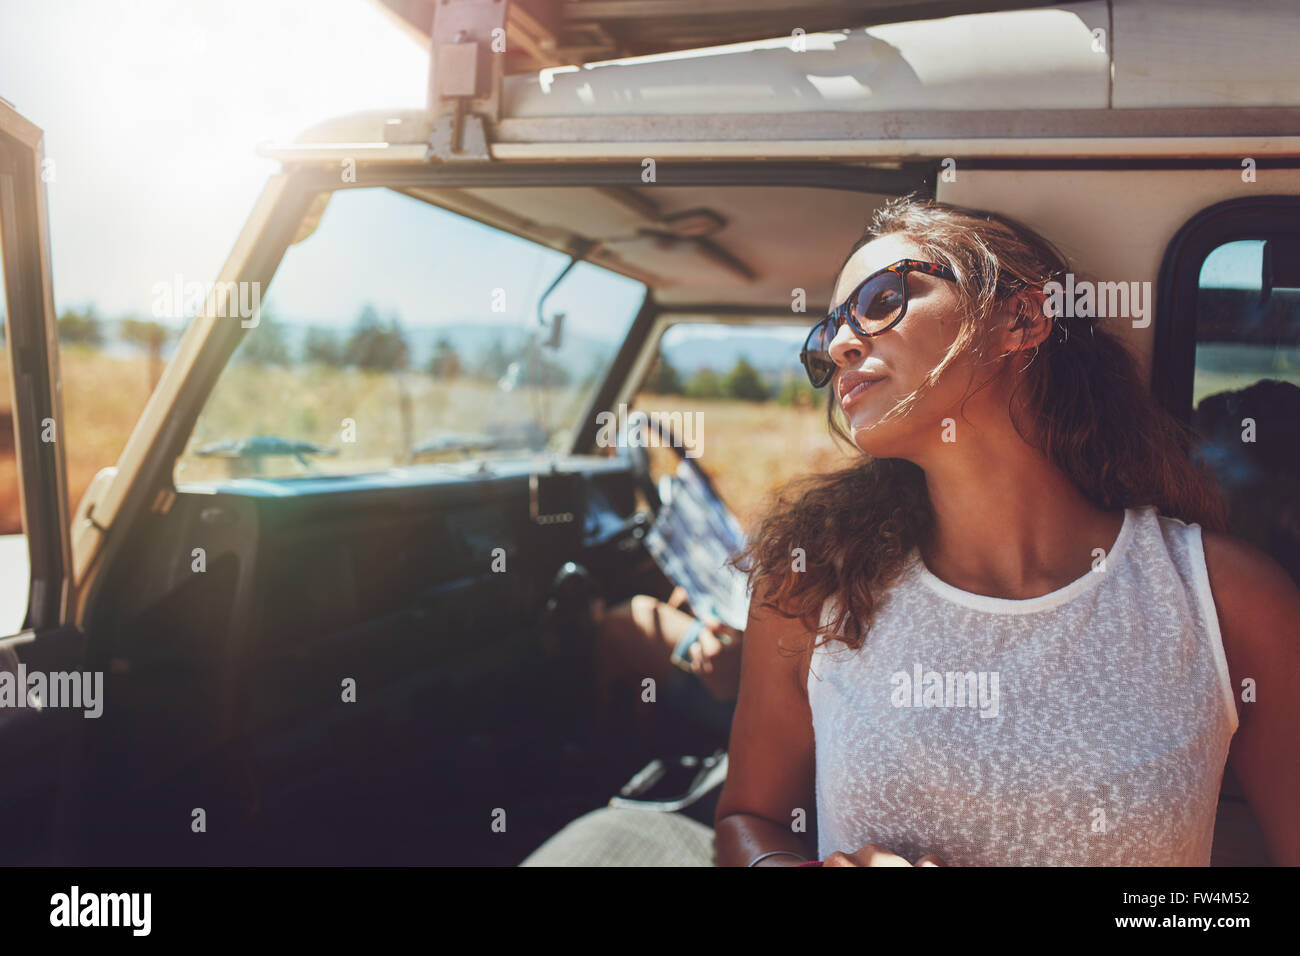 Young woman standing outside the car. Woman taking a break from the road trip. - Stock Image